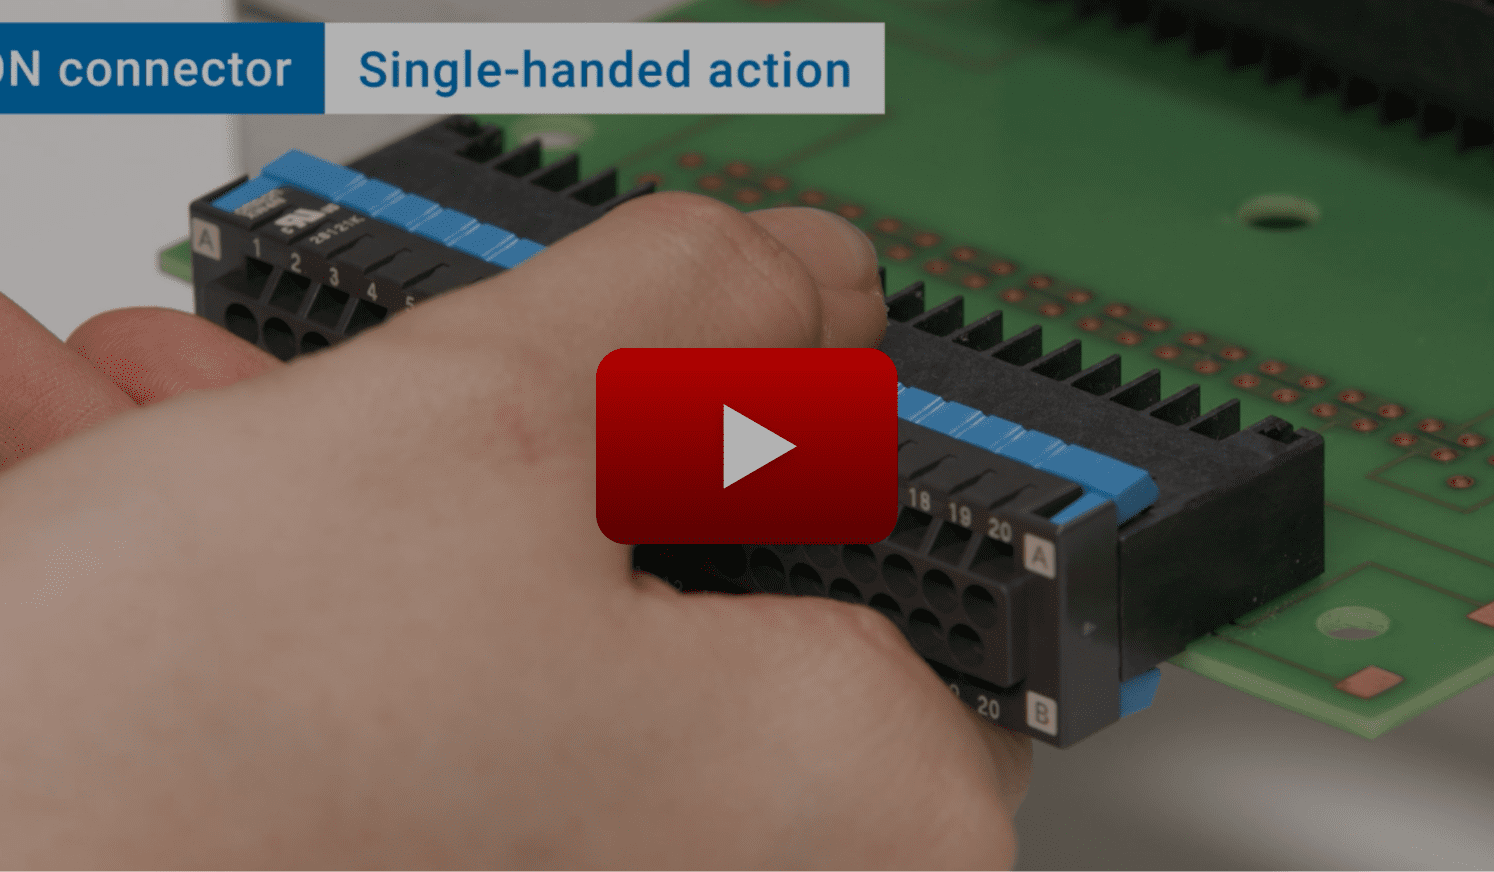 Single-handed action video